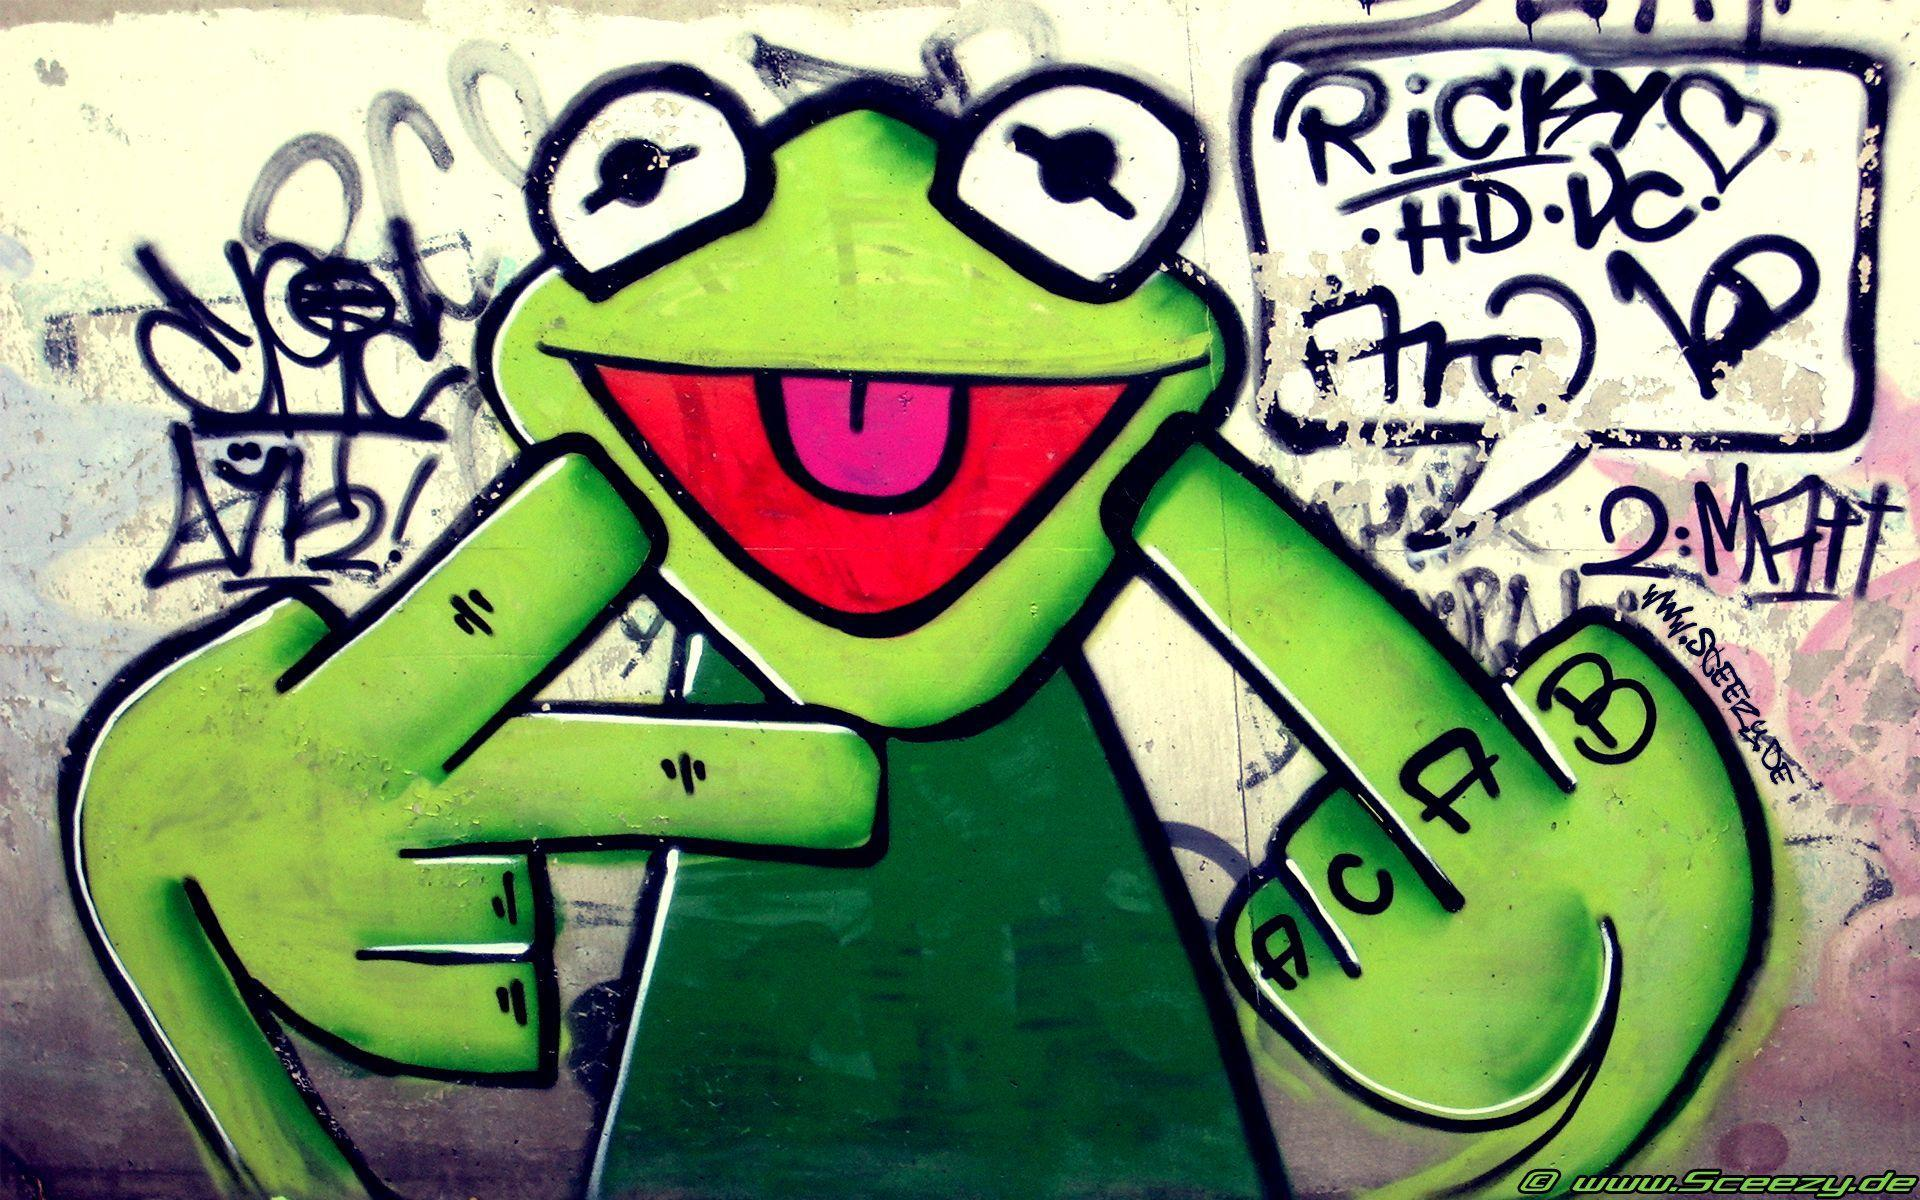 Graffiti wallpaper | 1920x1200 | #41128